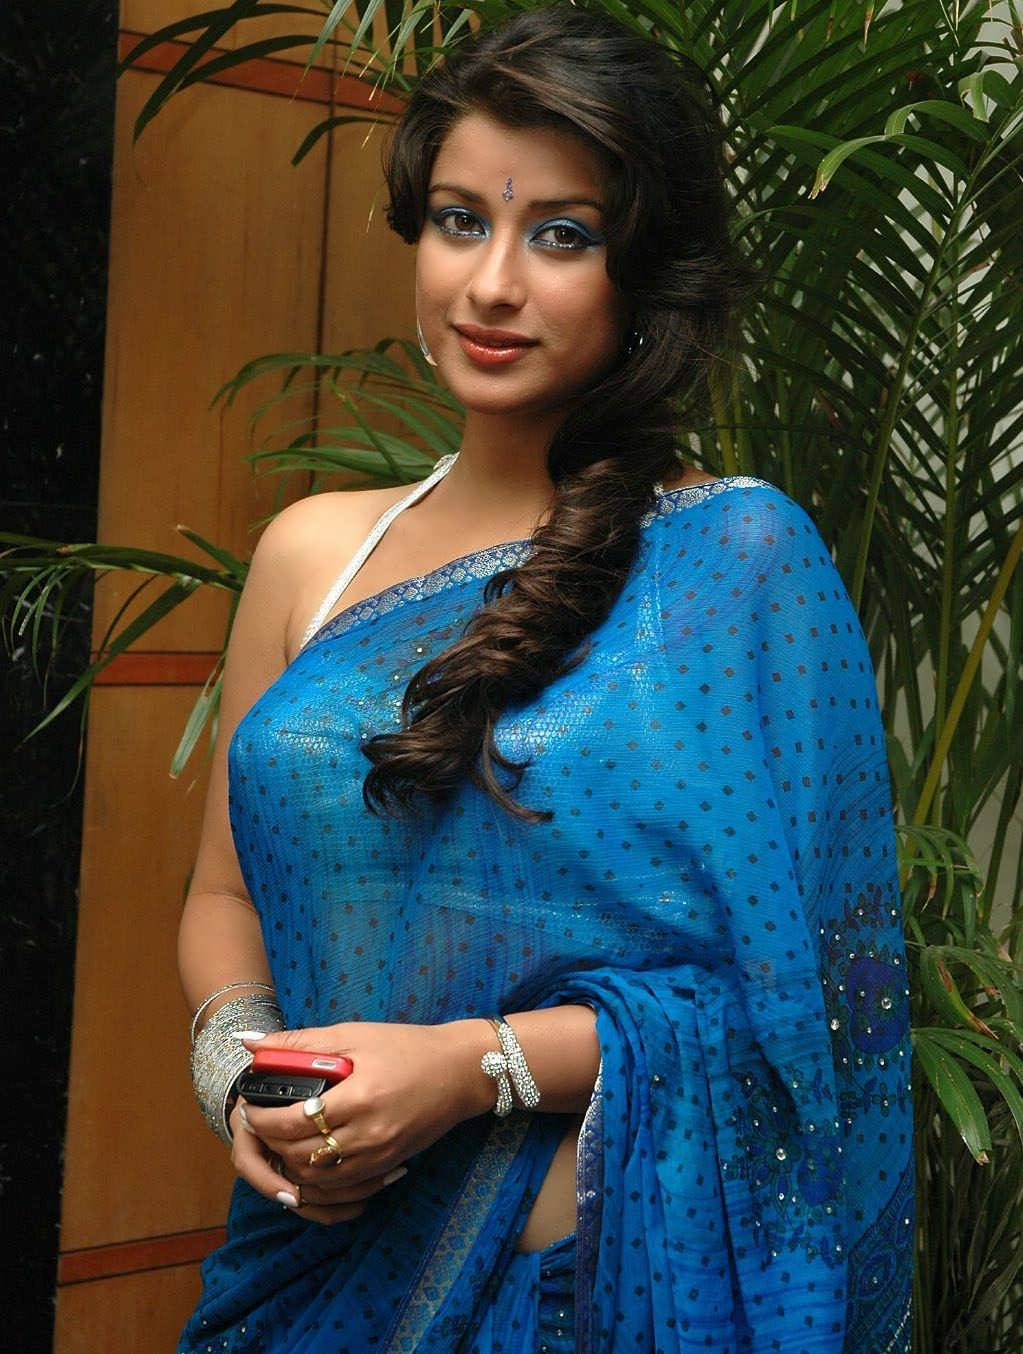 Saree Gallery | Craziest Photo Collection | Page 10